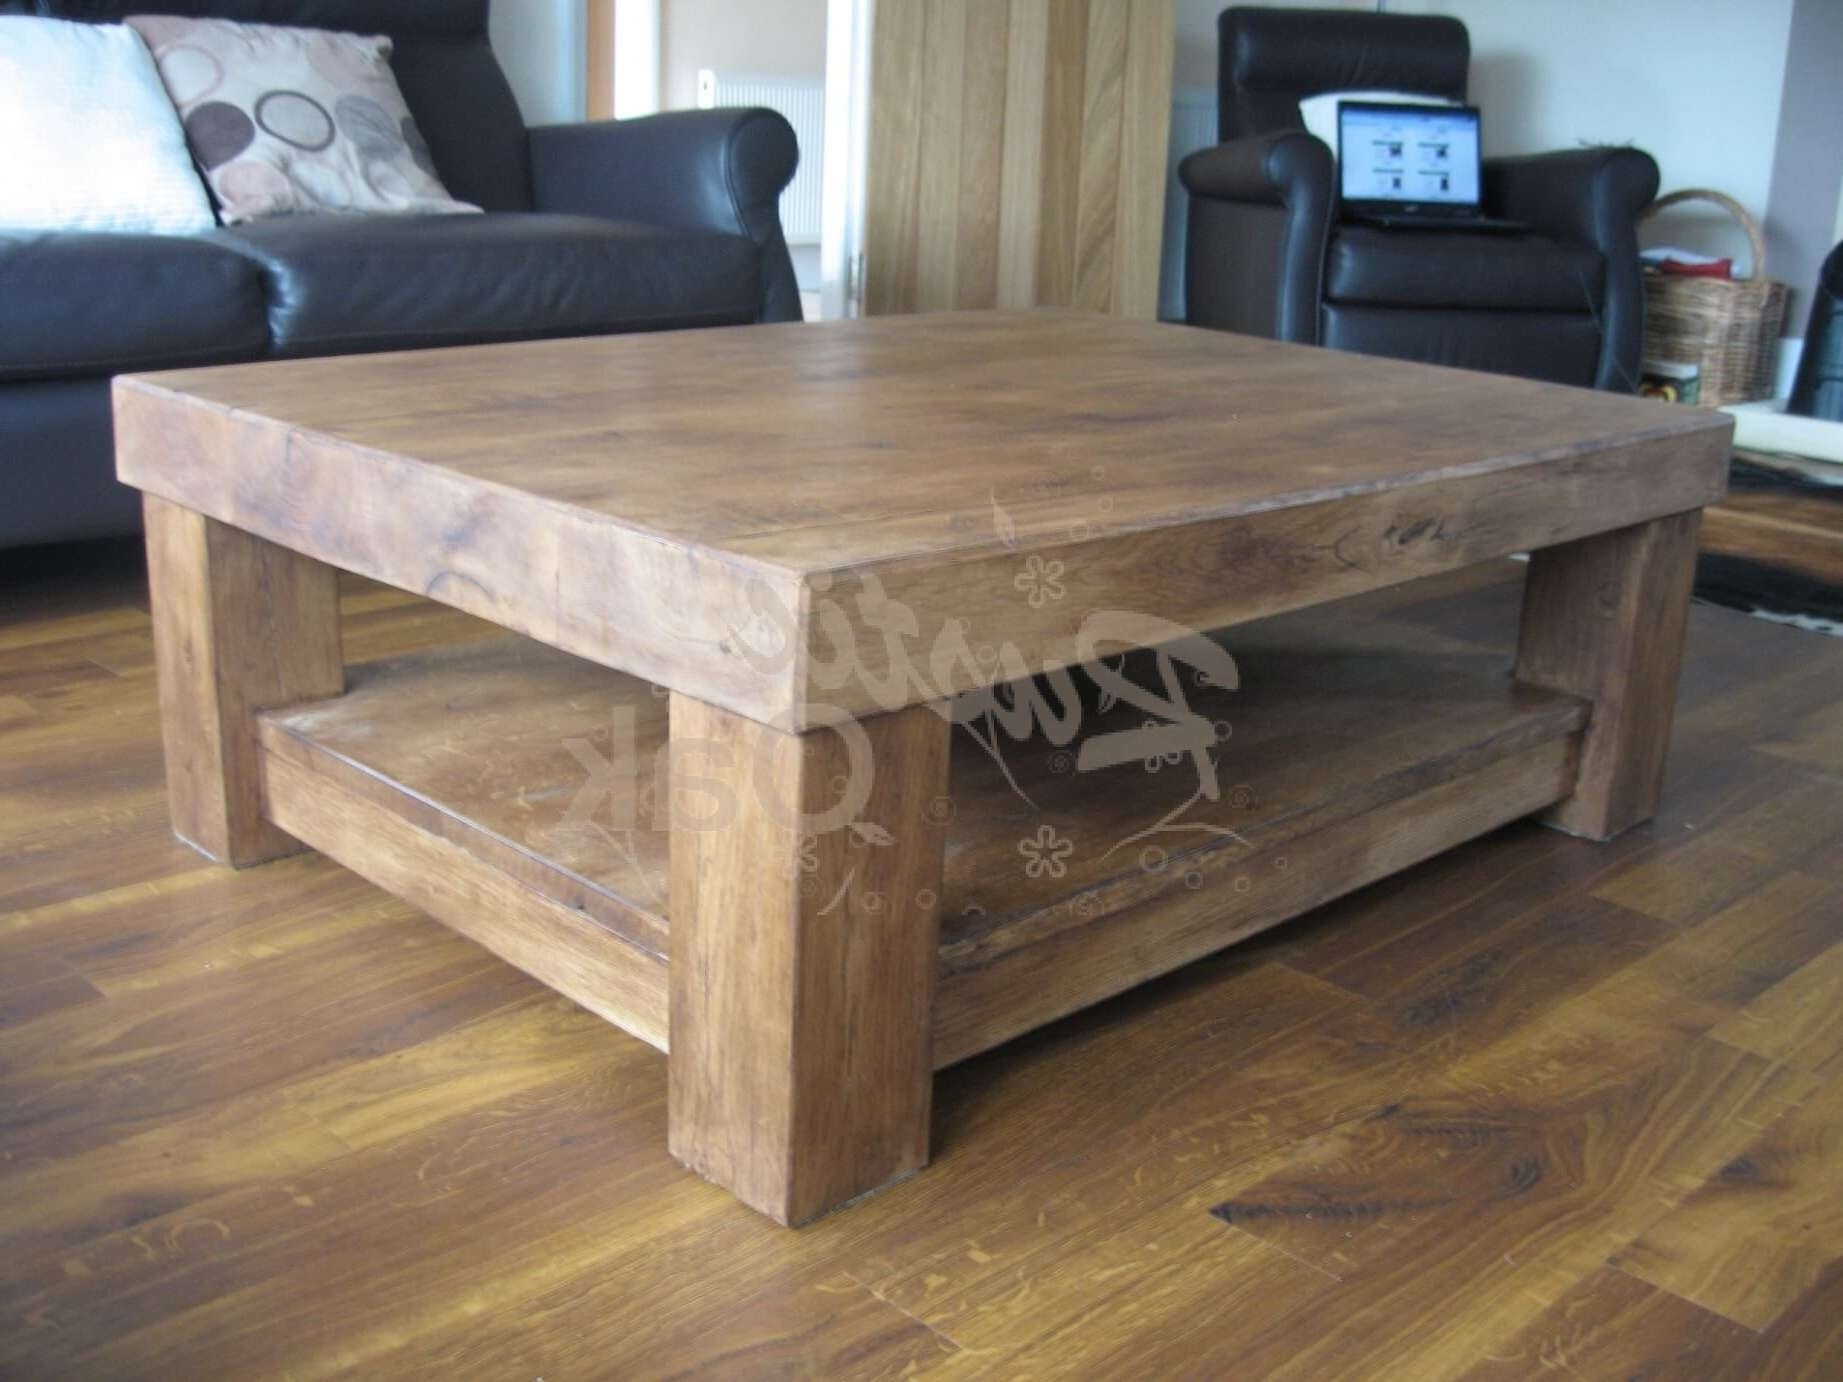 Chunky 4 Leg Coffee Table With Shelf – Rustic Oak For 2018 Chunky Oak Coffee Tables (View 4 of 20)